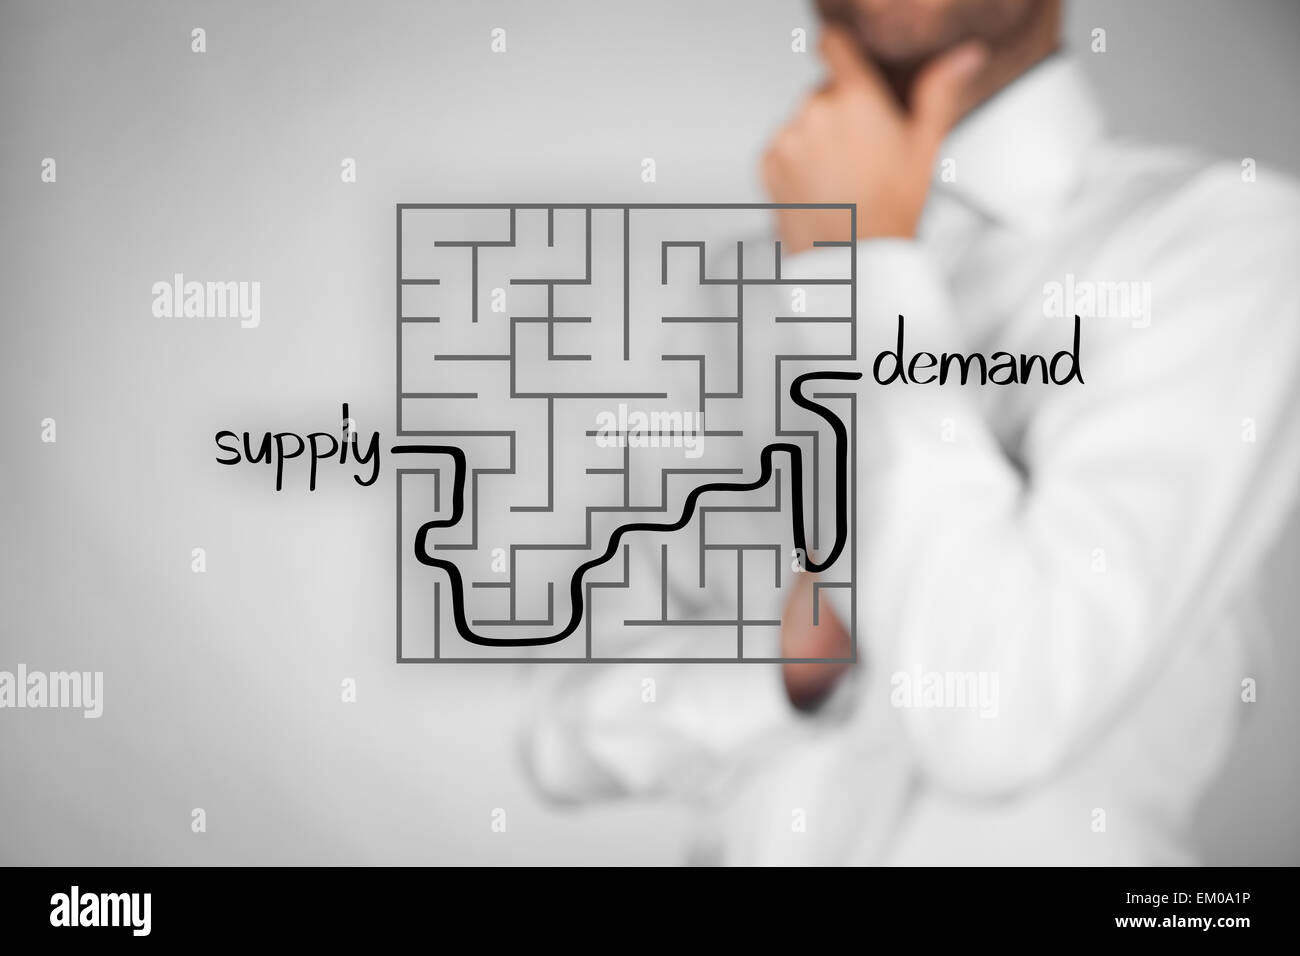 Long and difficult way from company supply to successful customers demand. Marketing product specialist plan new - Stock Image